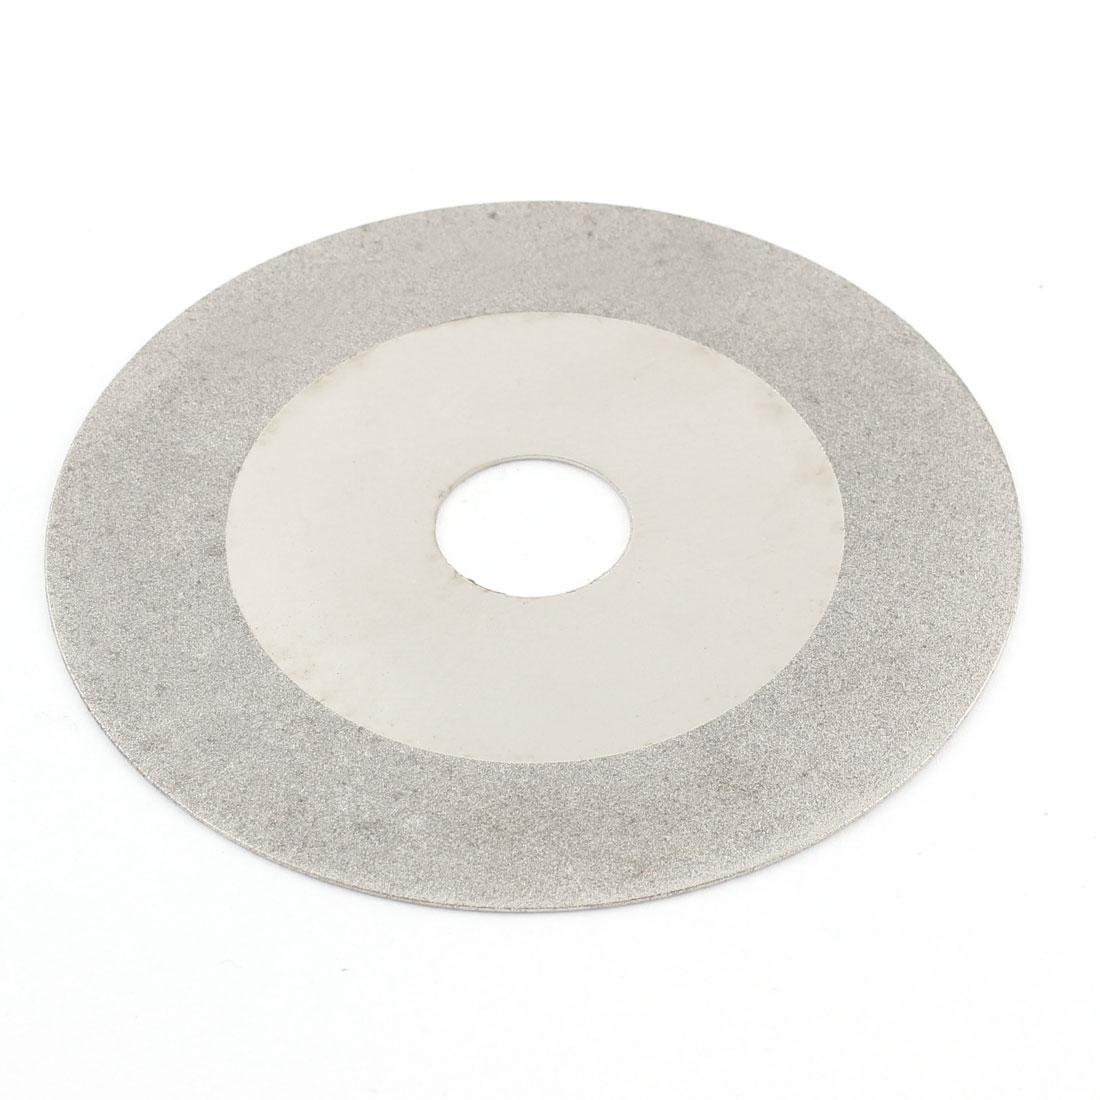 Flat Marble Glass Polishing Diamond Grinding Disc Tool 100mmx20mmx1mm